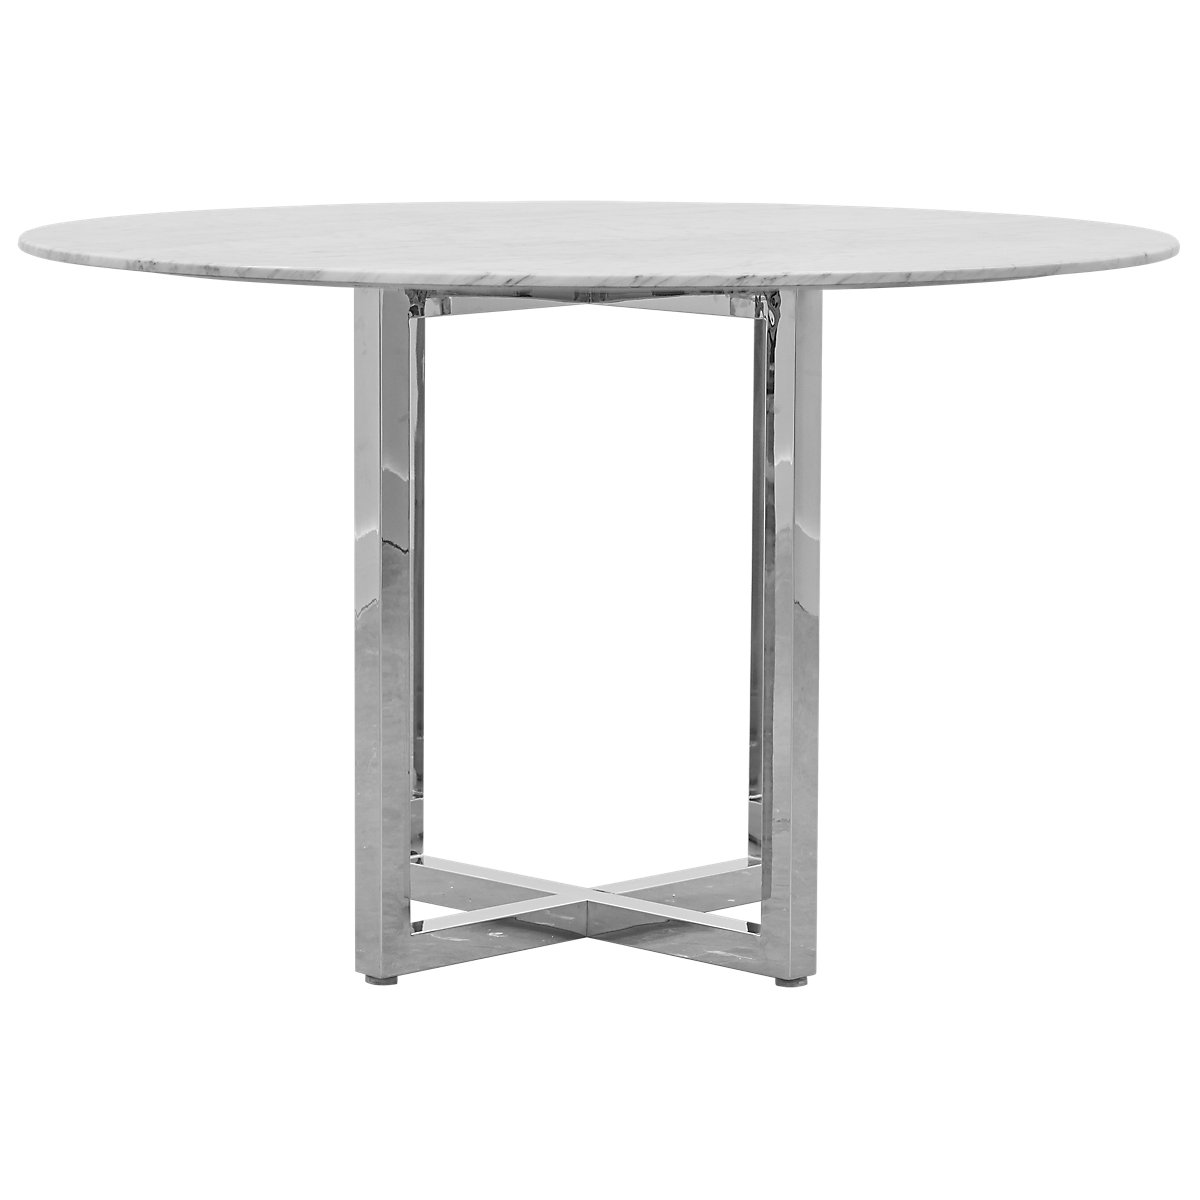 Amalfi Marble Round High Dining Table